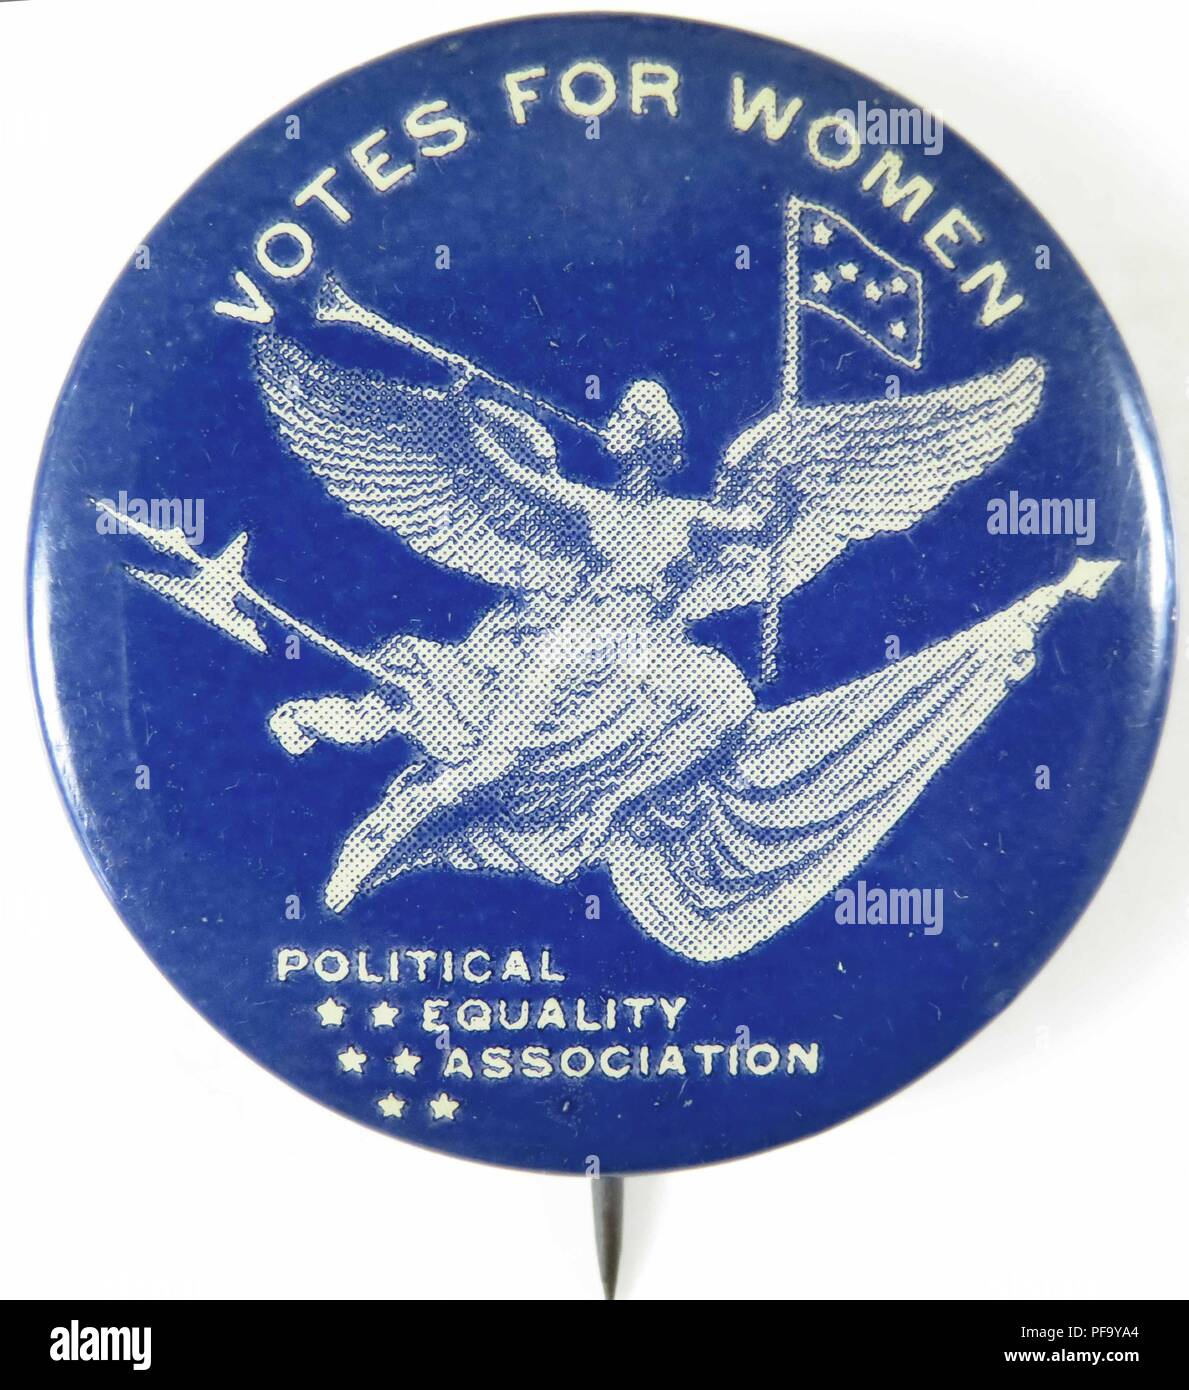 Pinback button with text reading Votes for Women from the Political Equality Association, advocating for women's suffrage, 1910. () Stock Photo